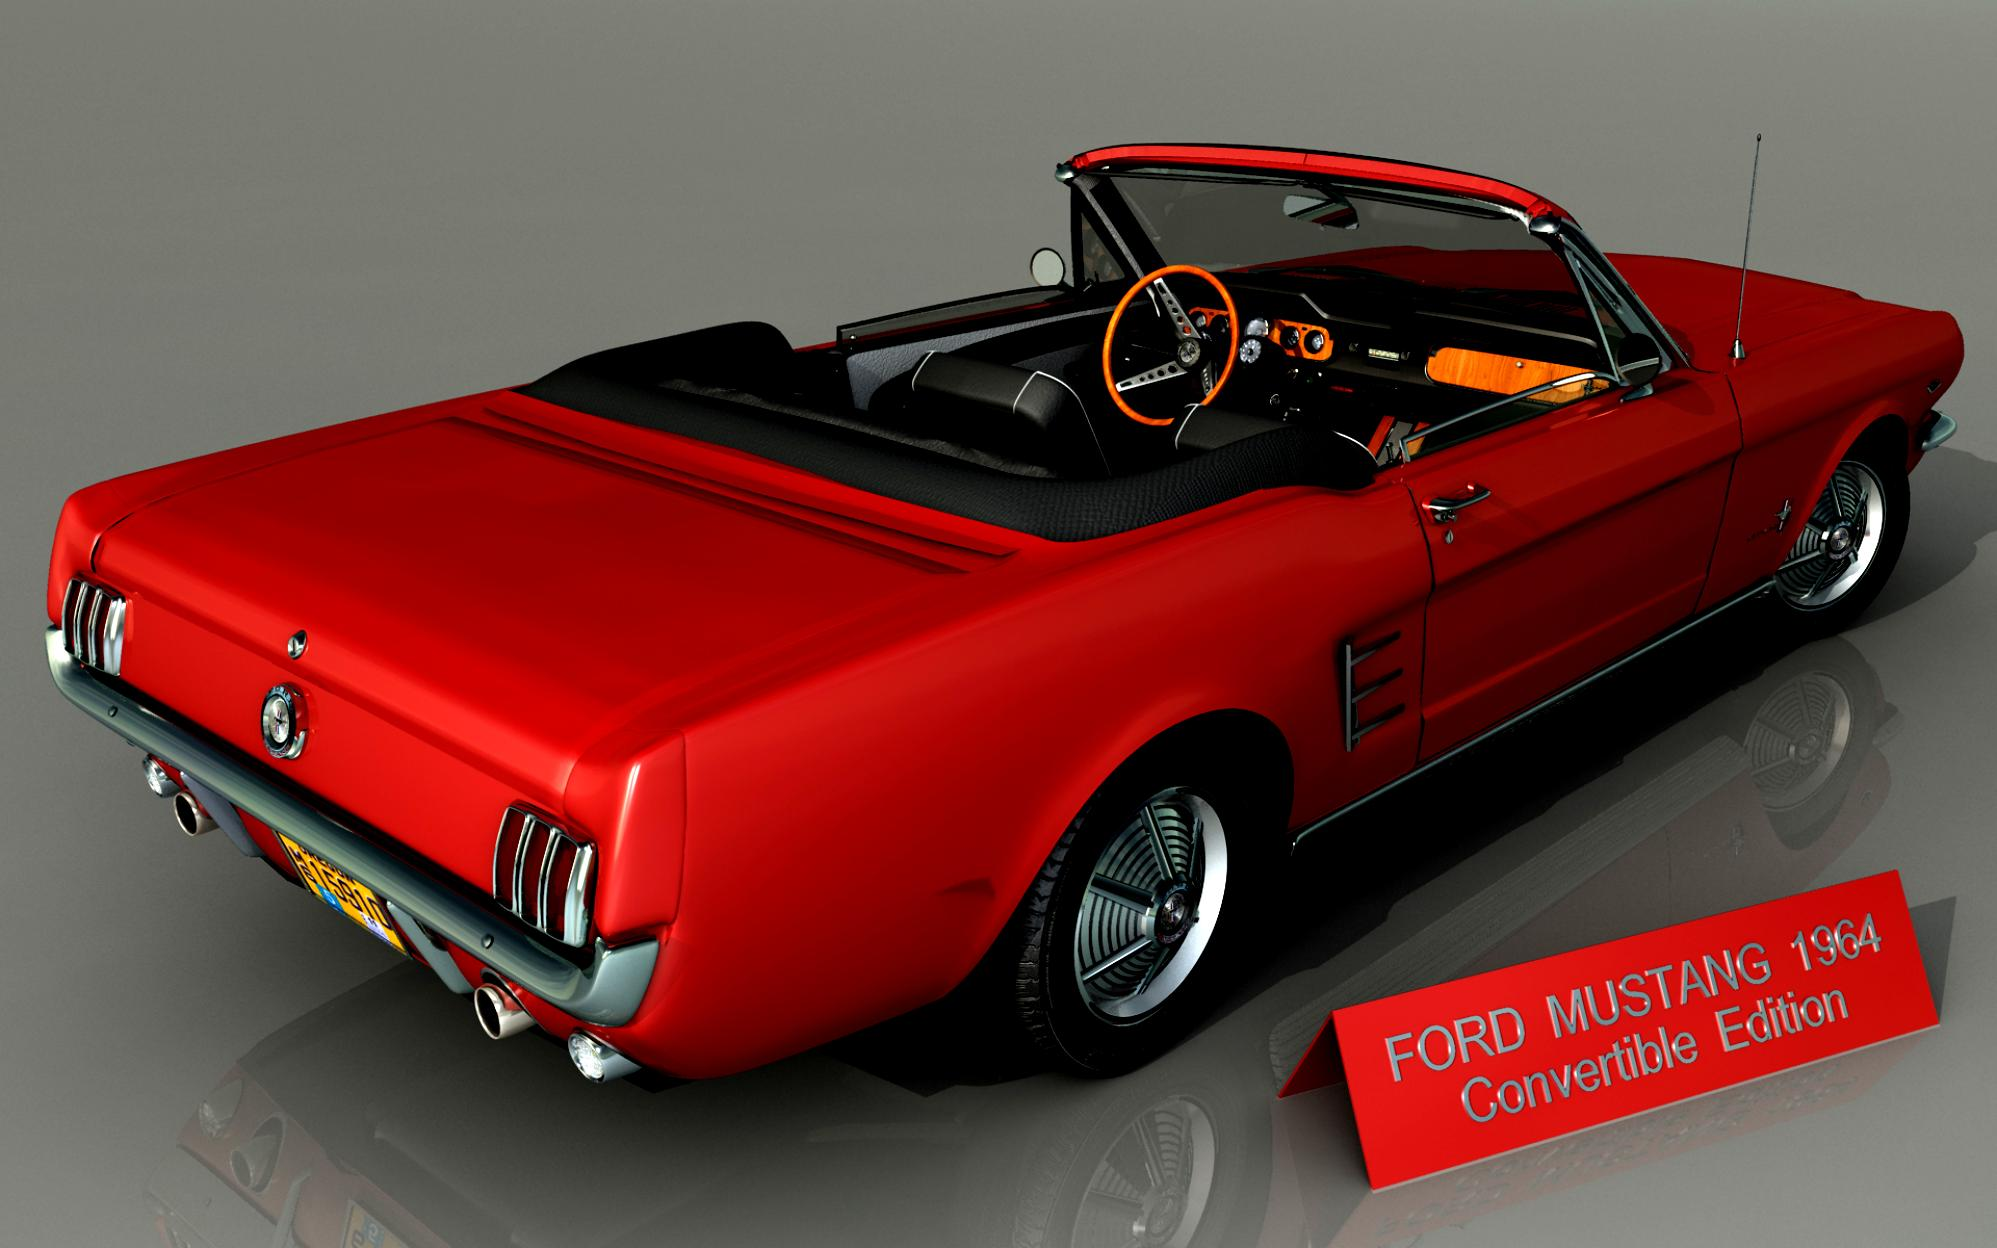 Ford Mustang Convertible 1964 On Ltd 55